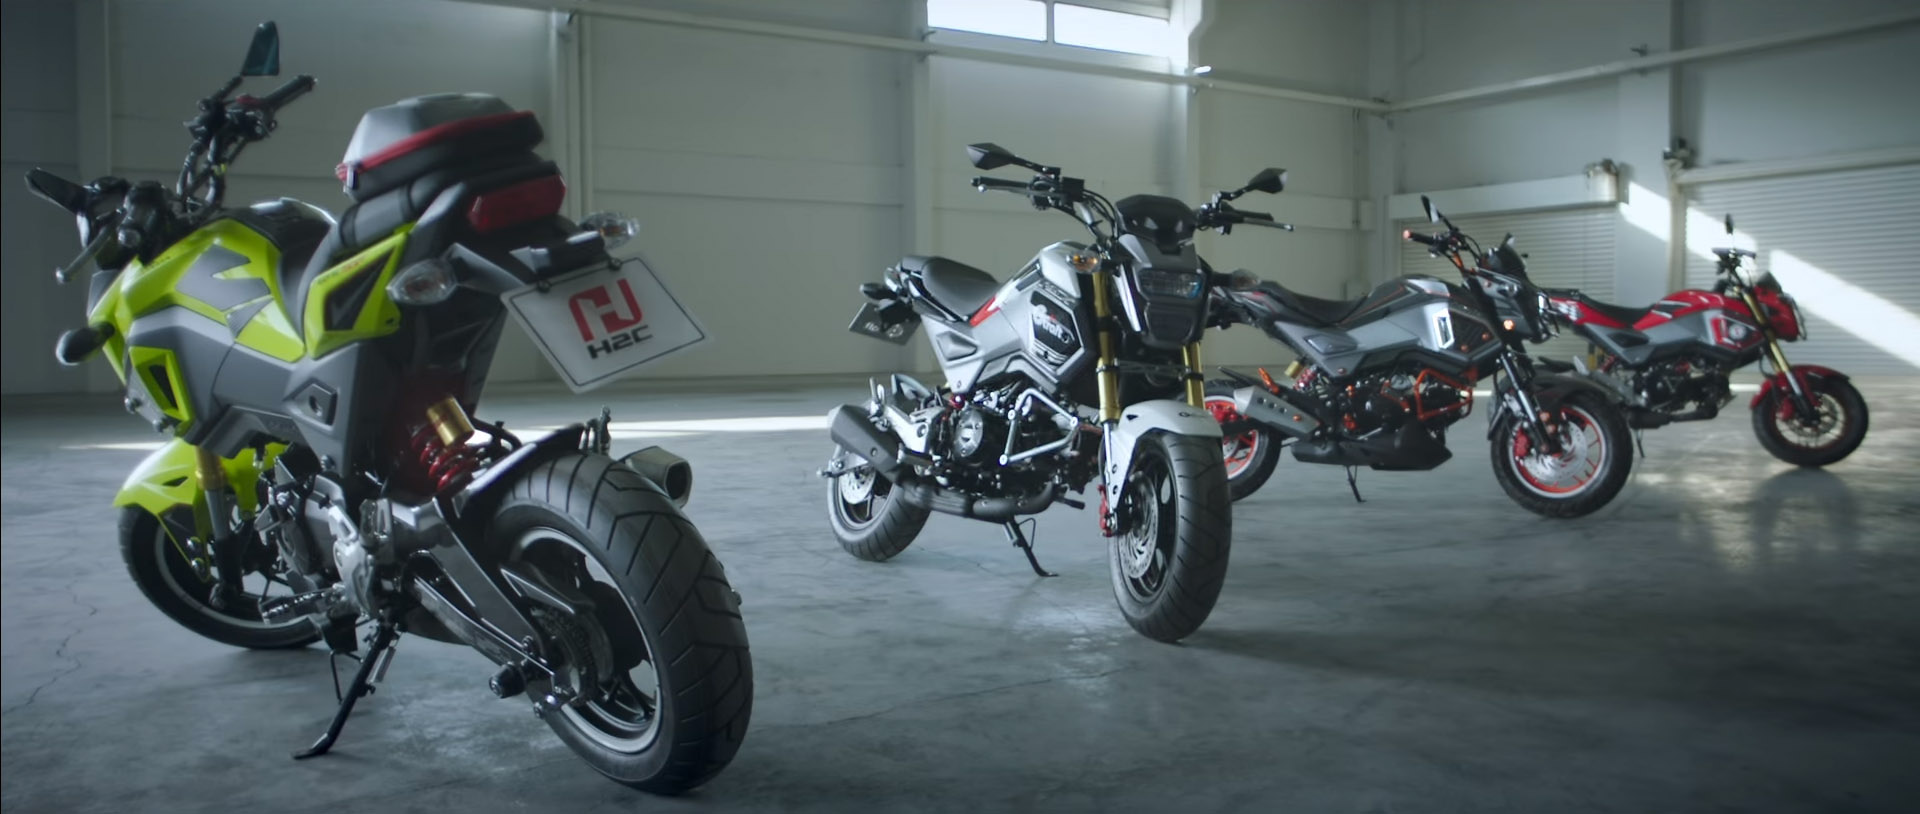 new 2017 honda grom changes announcement | motorcycle news / update